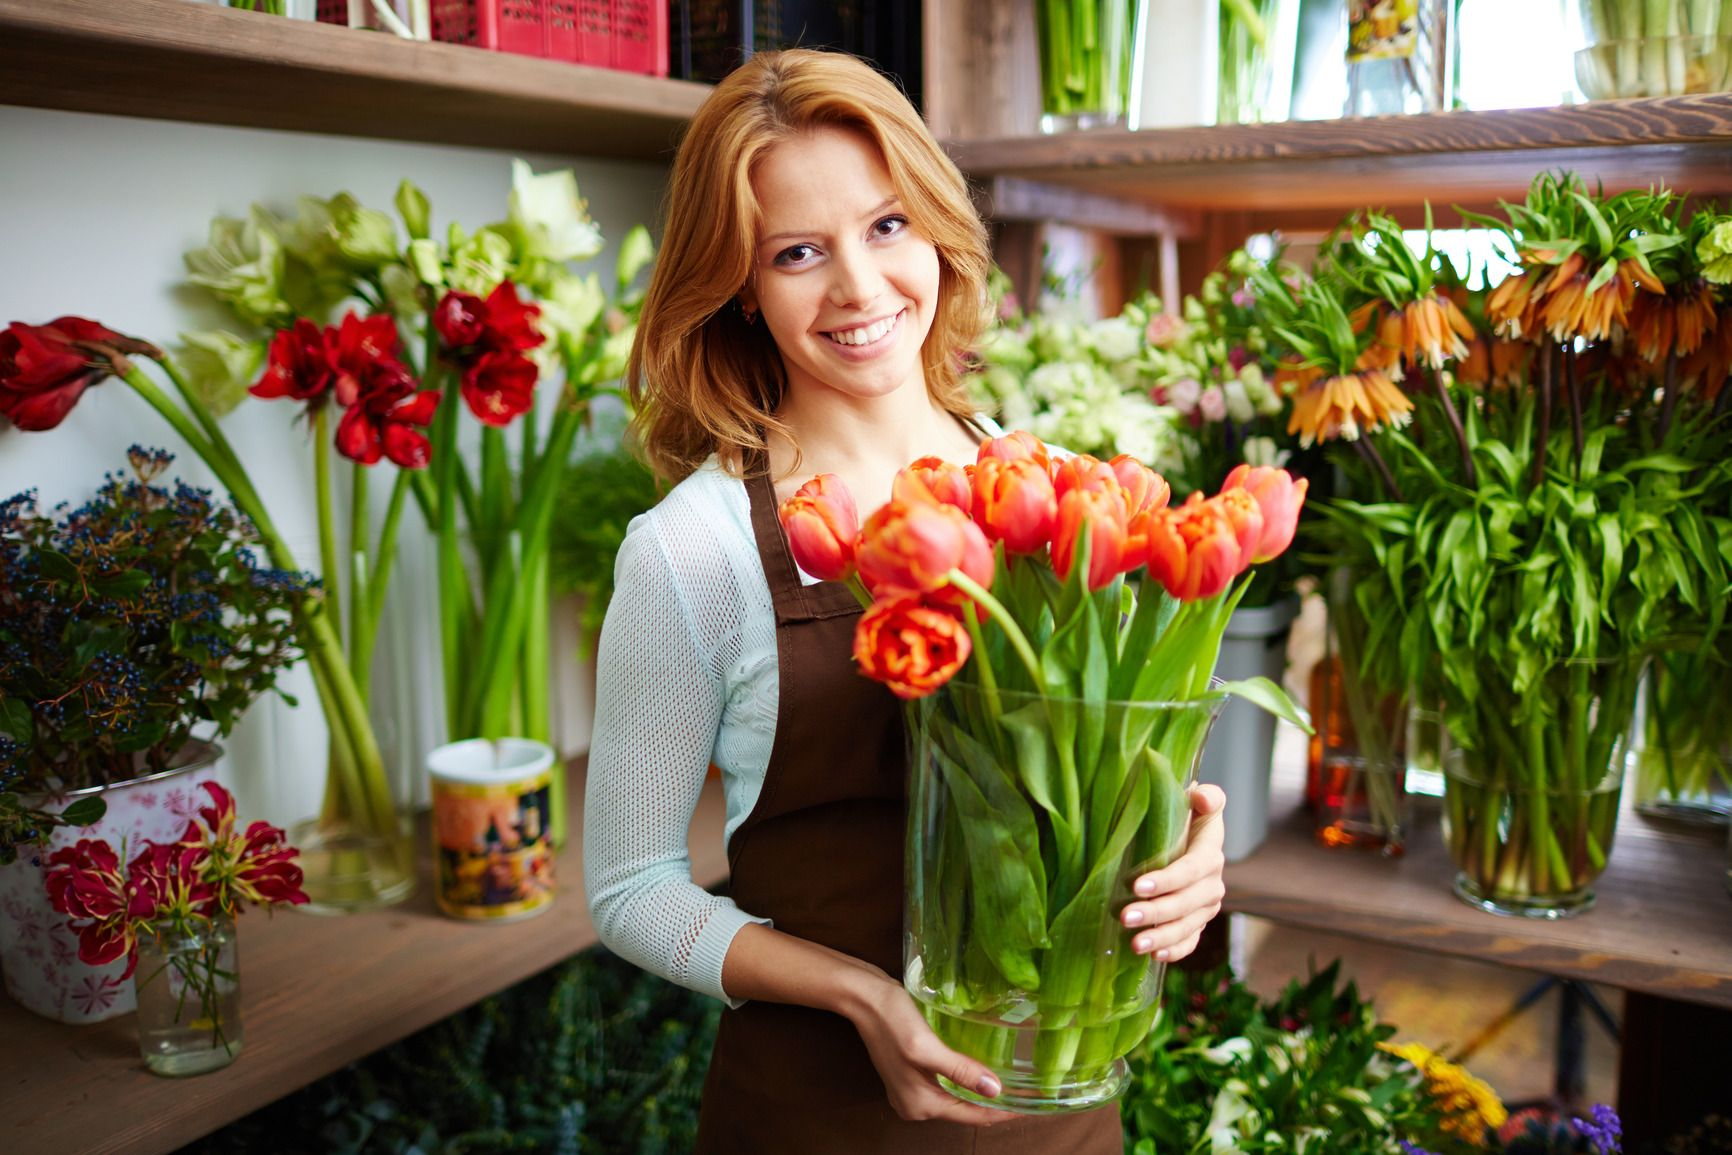 Ftd Flowers Promo Code Ftd Flowers Coupon Code 2019 Discount Code Ftd Flowers 50 Off Ftd Flowers Fresh Flower Delivery Flower Delivery